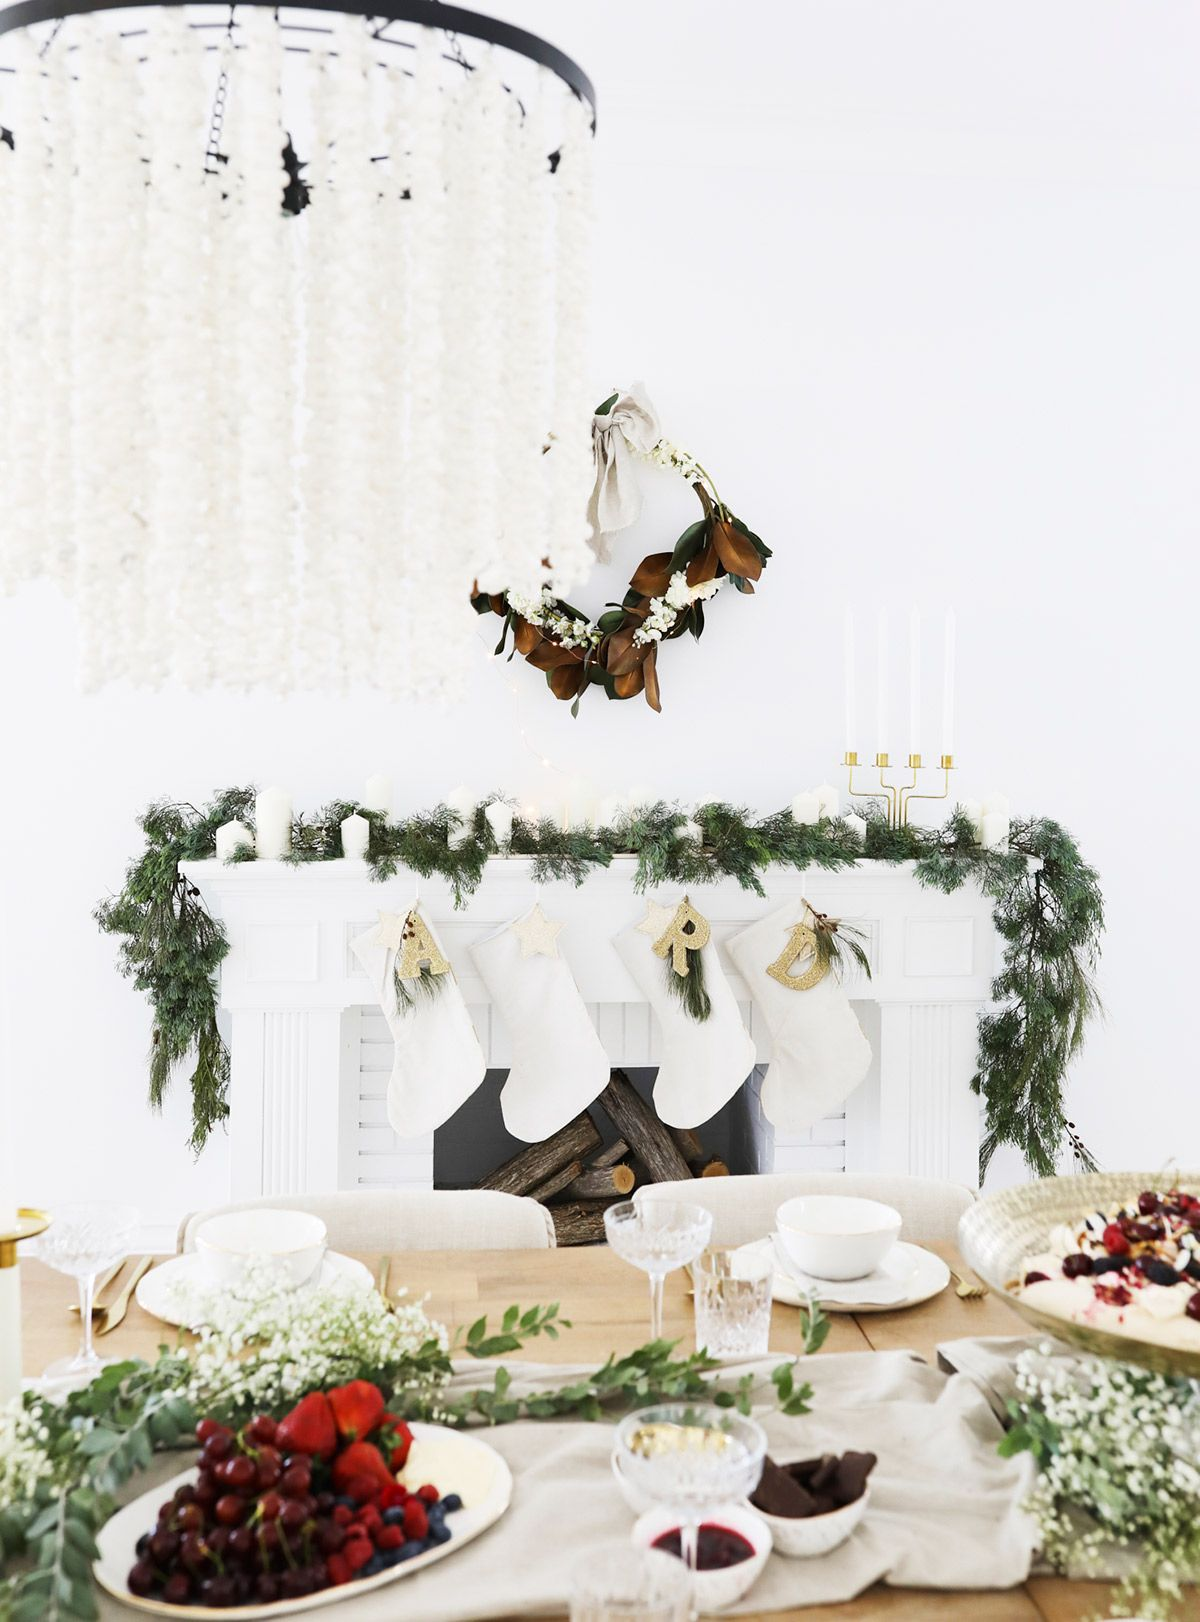 GET THE LOOK CHRISTMAS AT BONNIE'S Christmas table